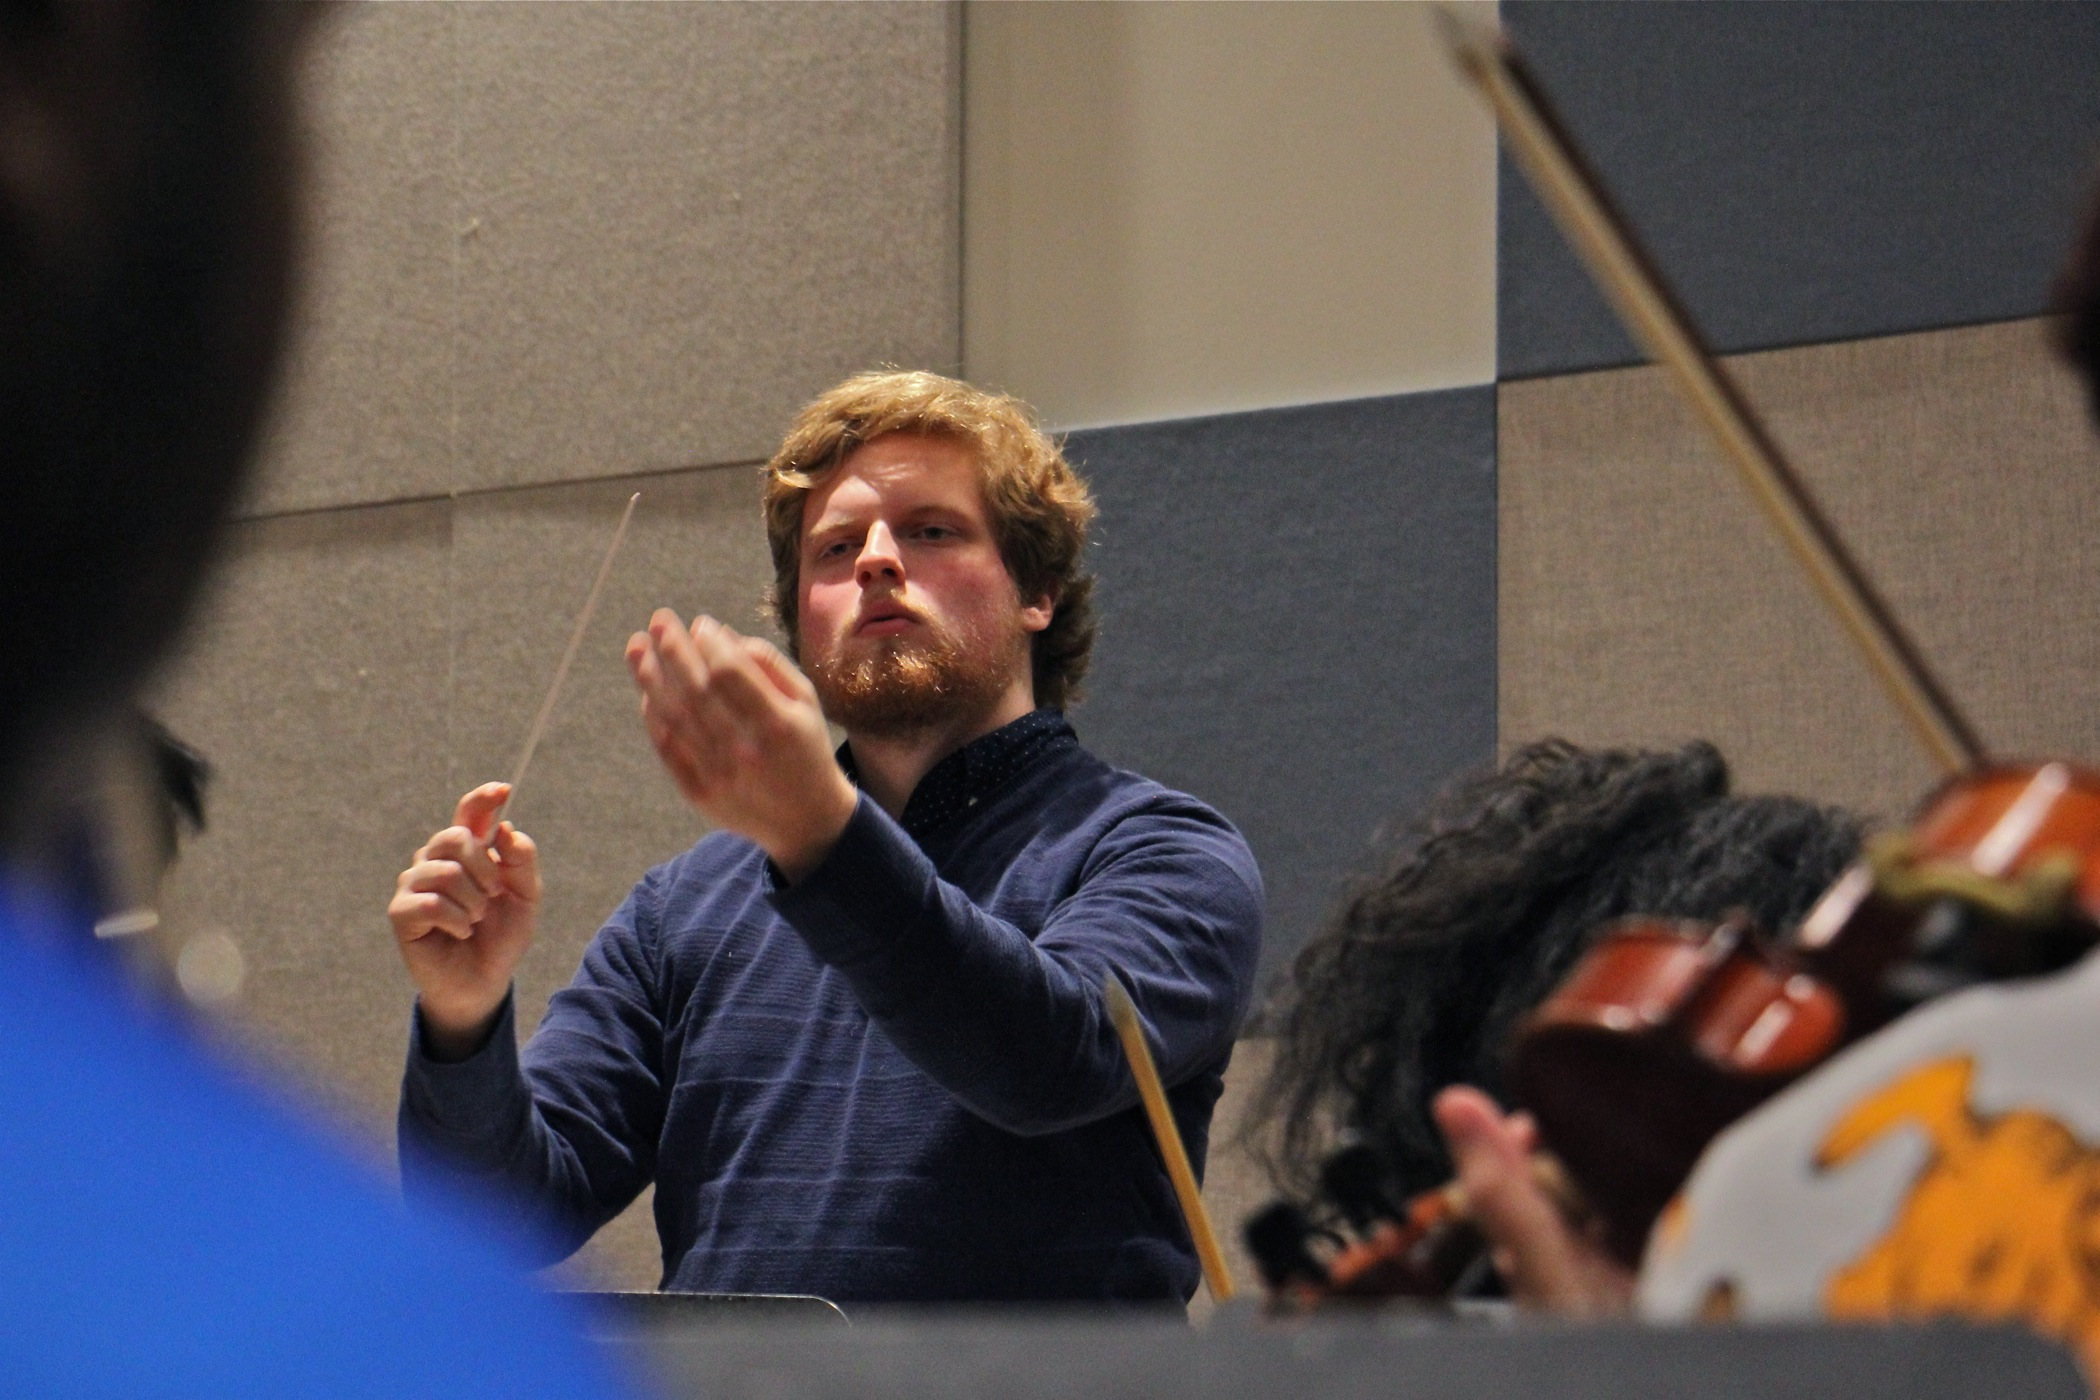 Davey Hiester conducts the student-led Center City Chamber Orchestra during rehearsal at Settlement Music School.